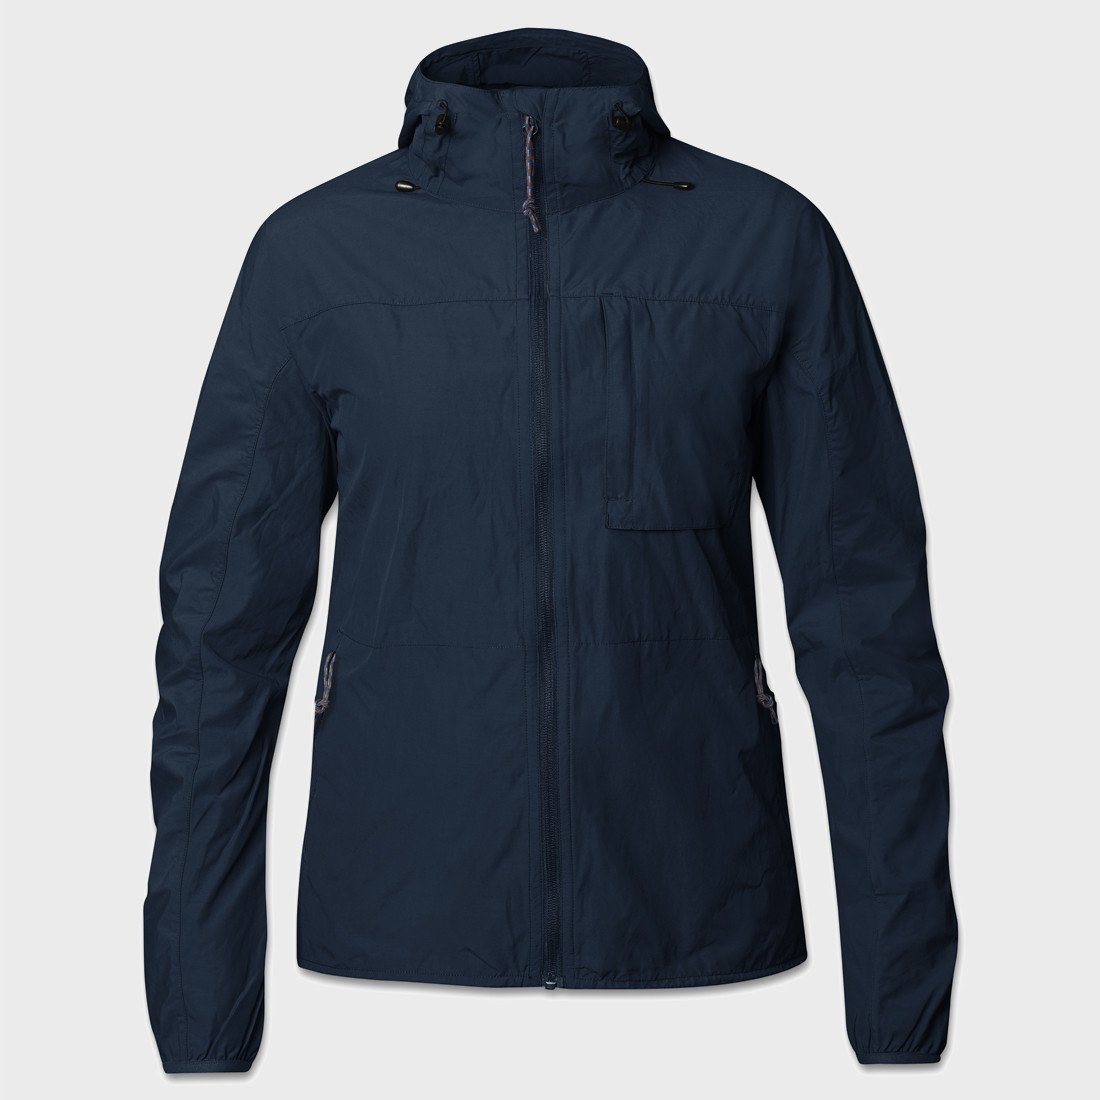 Fjallraven High Coast Wind Jacket Women's Navy